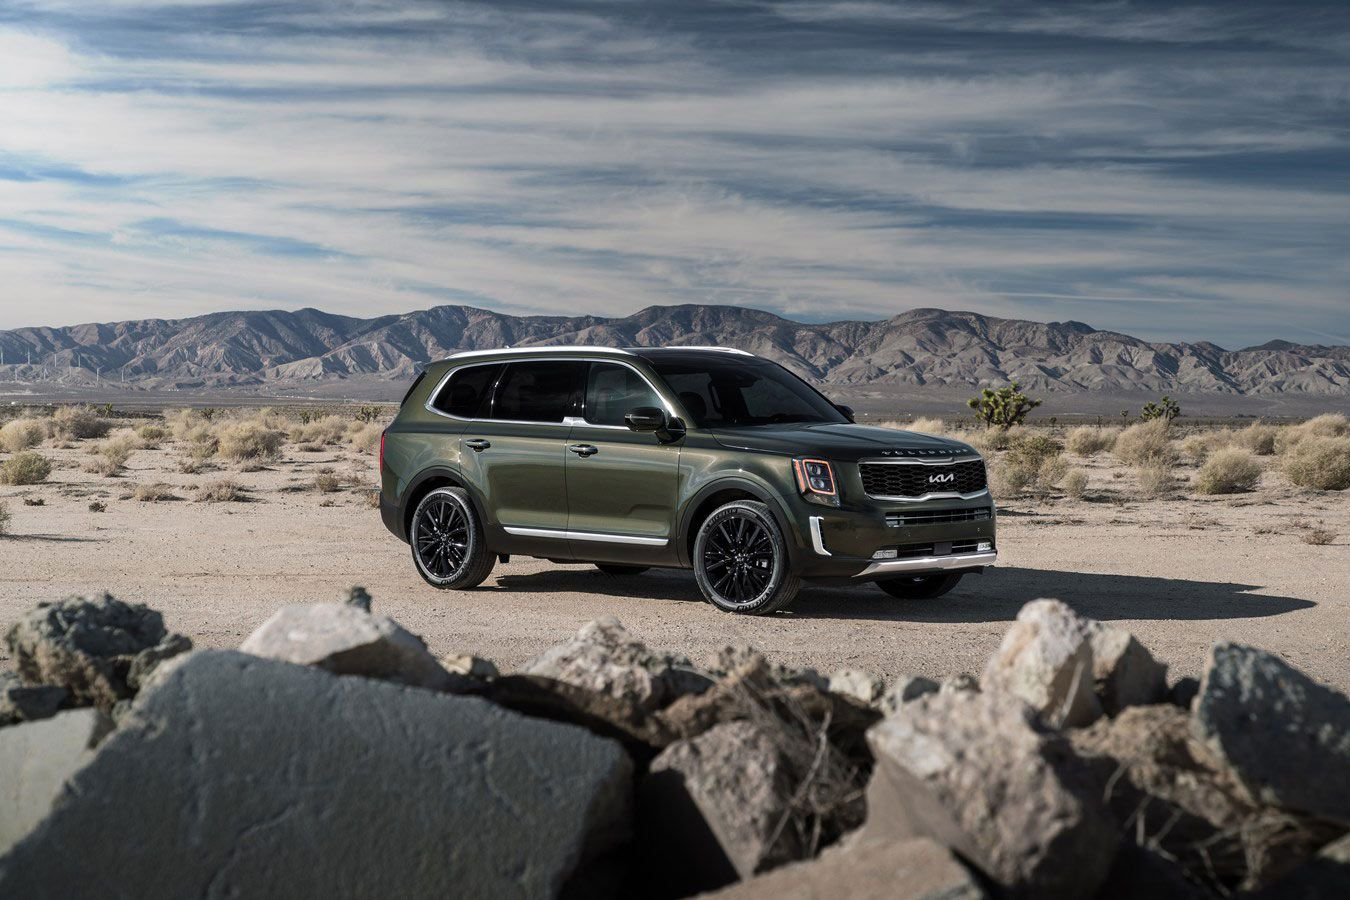 The 2021 Kia Telluride can tow up to 5,000 pounds.